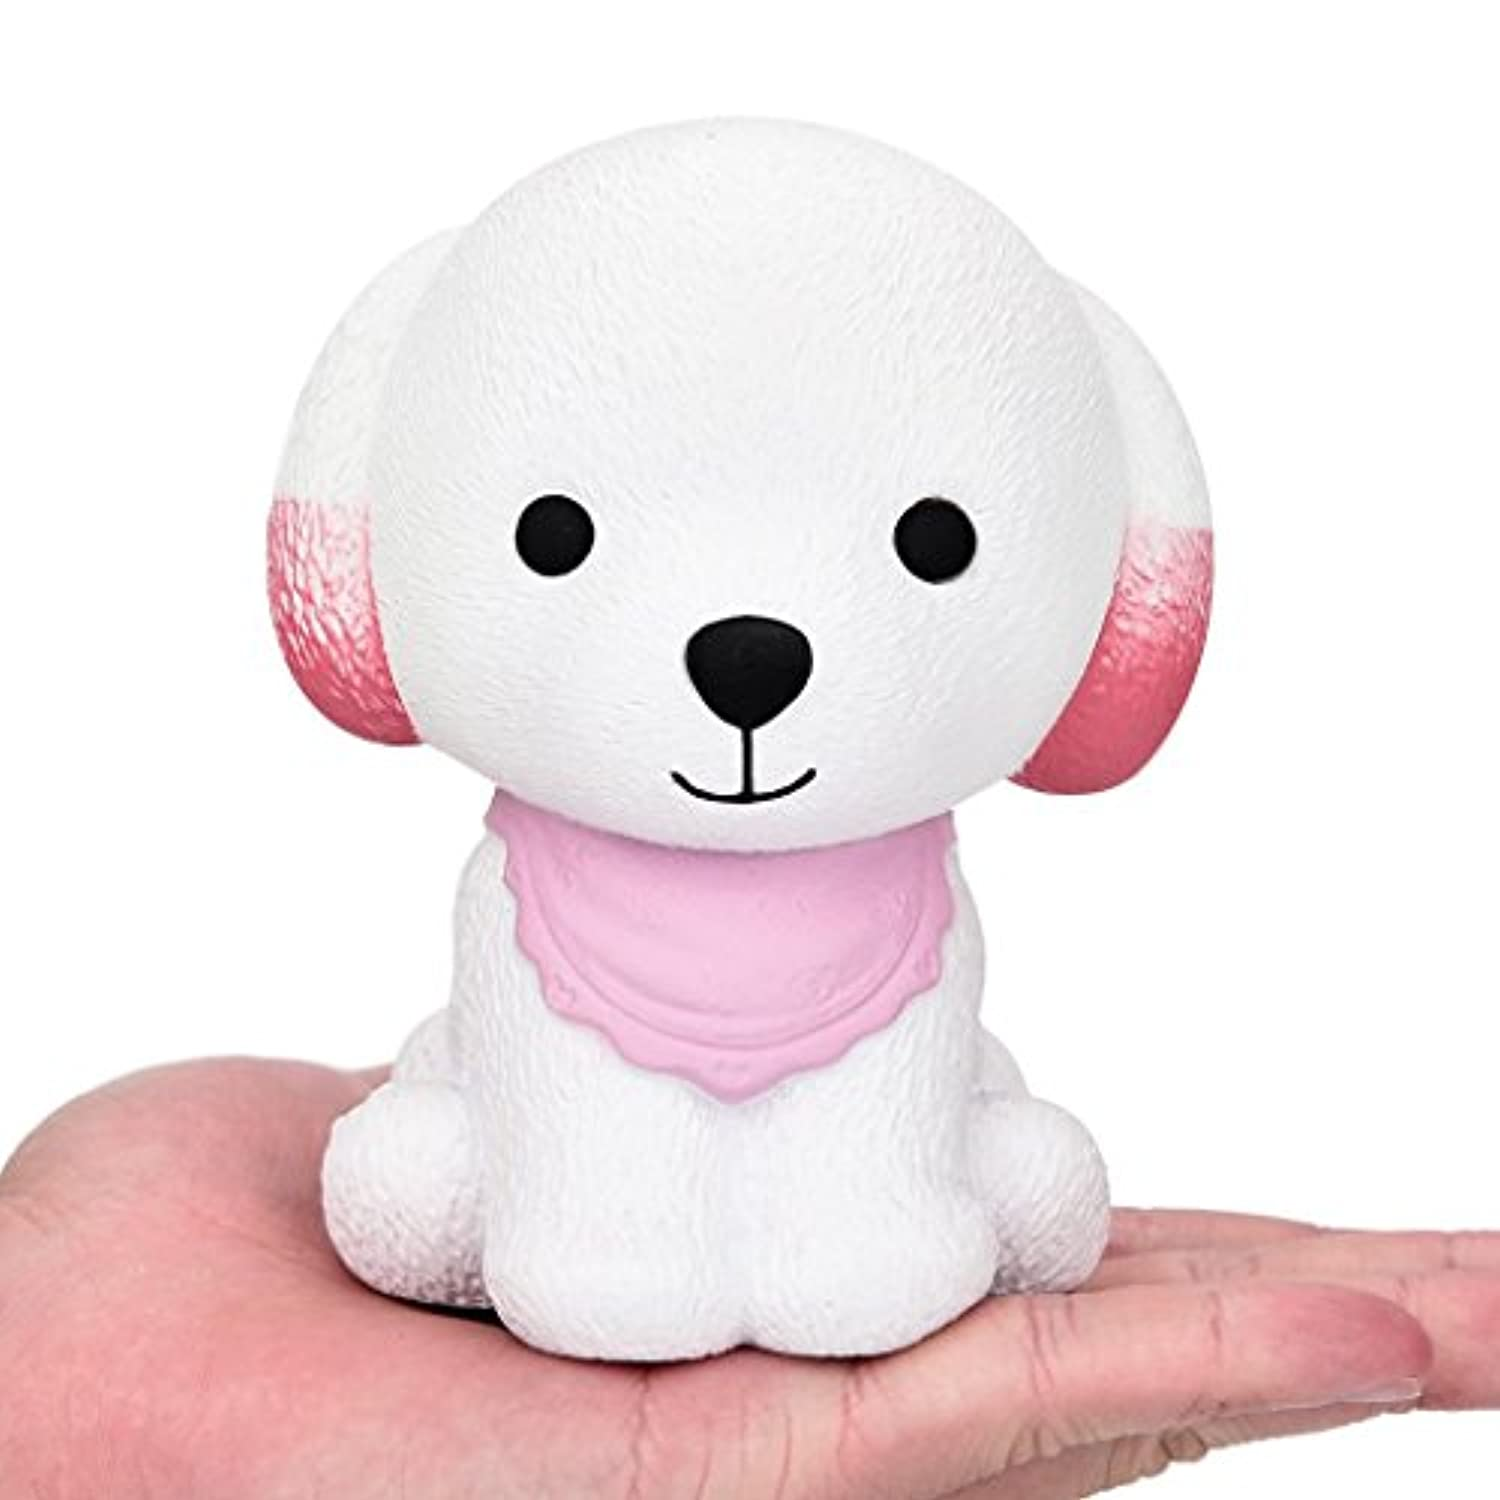 Slow Rising子犬Squishies Squeeze Toys by coerni 4.7 * 3.5 * 3.15 inch ピンク OIHU-54UJ5